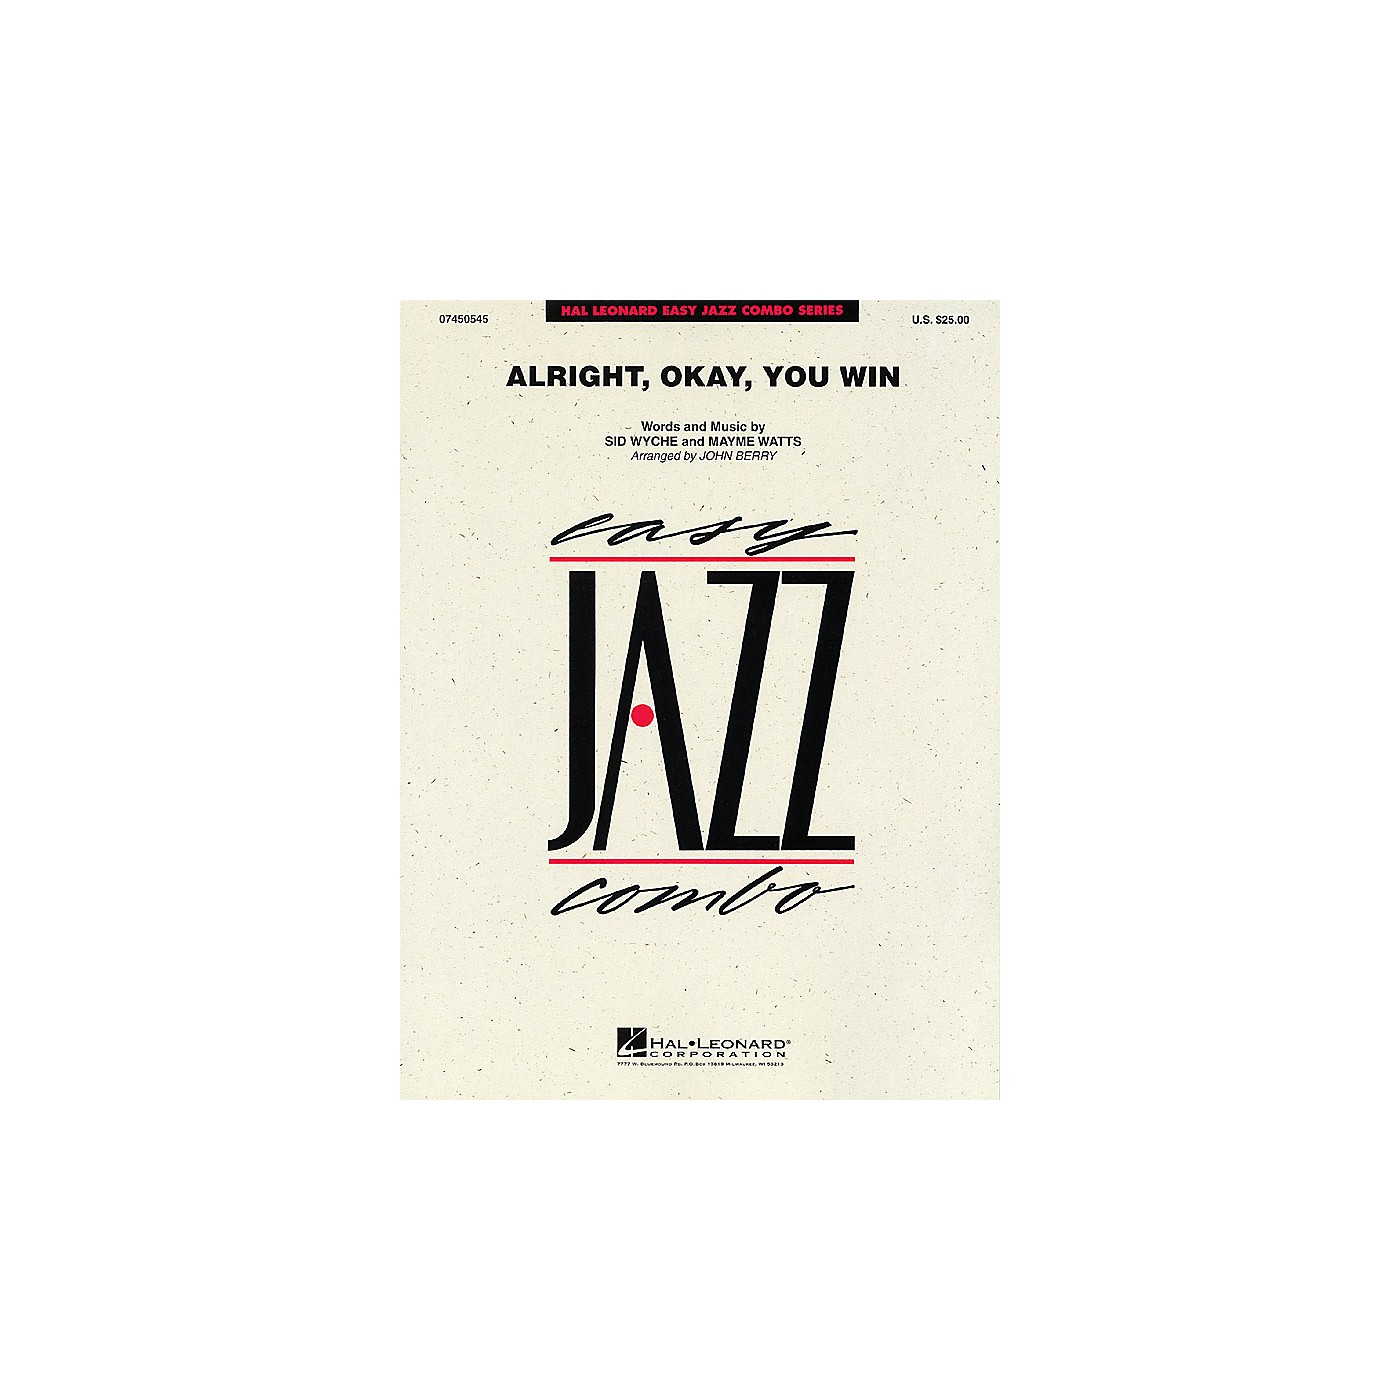 Hal Leonard Alright, Okay, You Win Jazz Band Level 2 Arranged by John Berry thumbnail